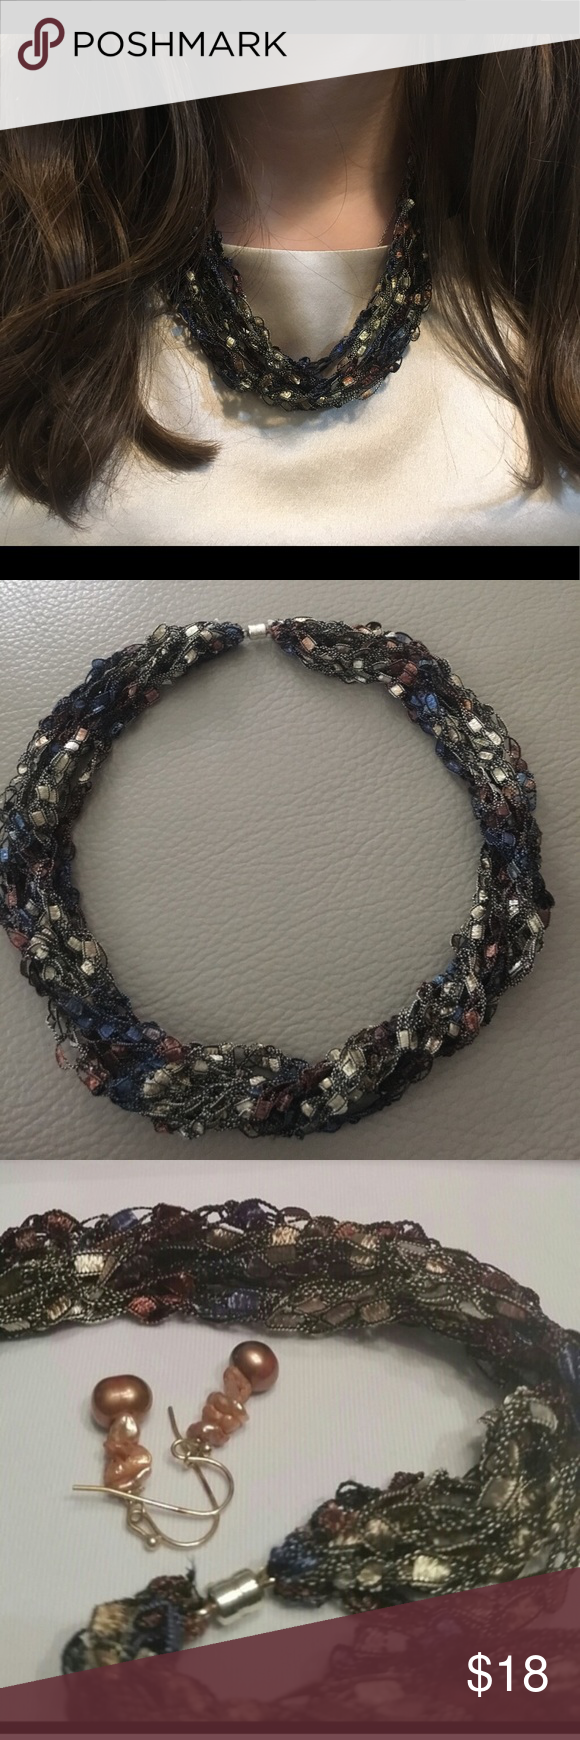 🆕Handmade necklace.✨ 🍀These  crocheted necklaces are absolutely dazzling and gorgeous. They look like shine beads and are light weight and very eye catching .  Simply hand wash in water, roll in towel to remove excess water, and lay flat to dry. Jewelry Necklaces